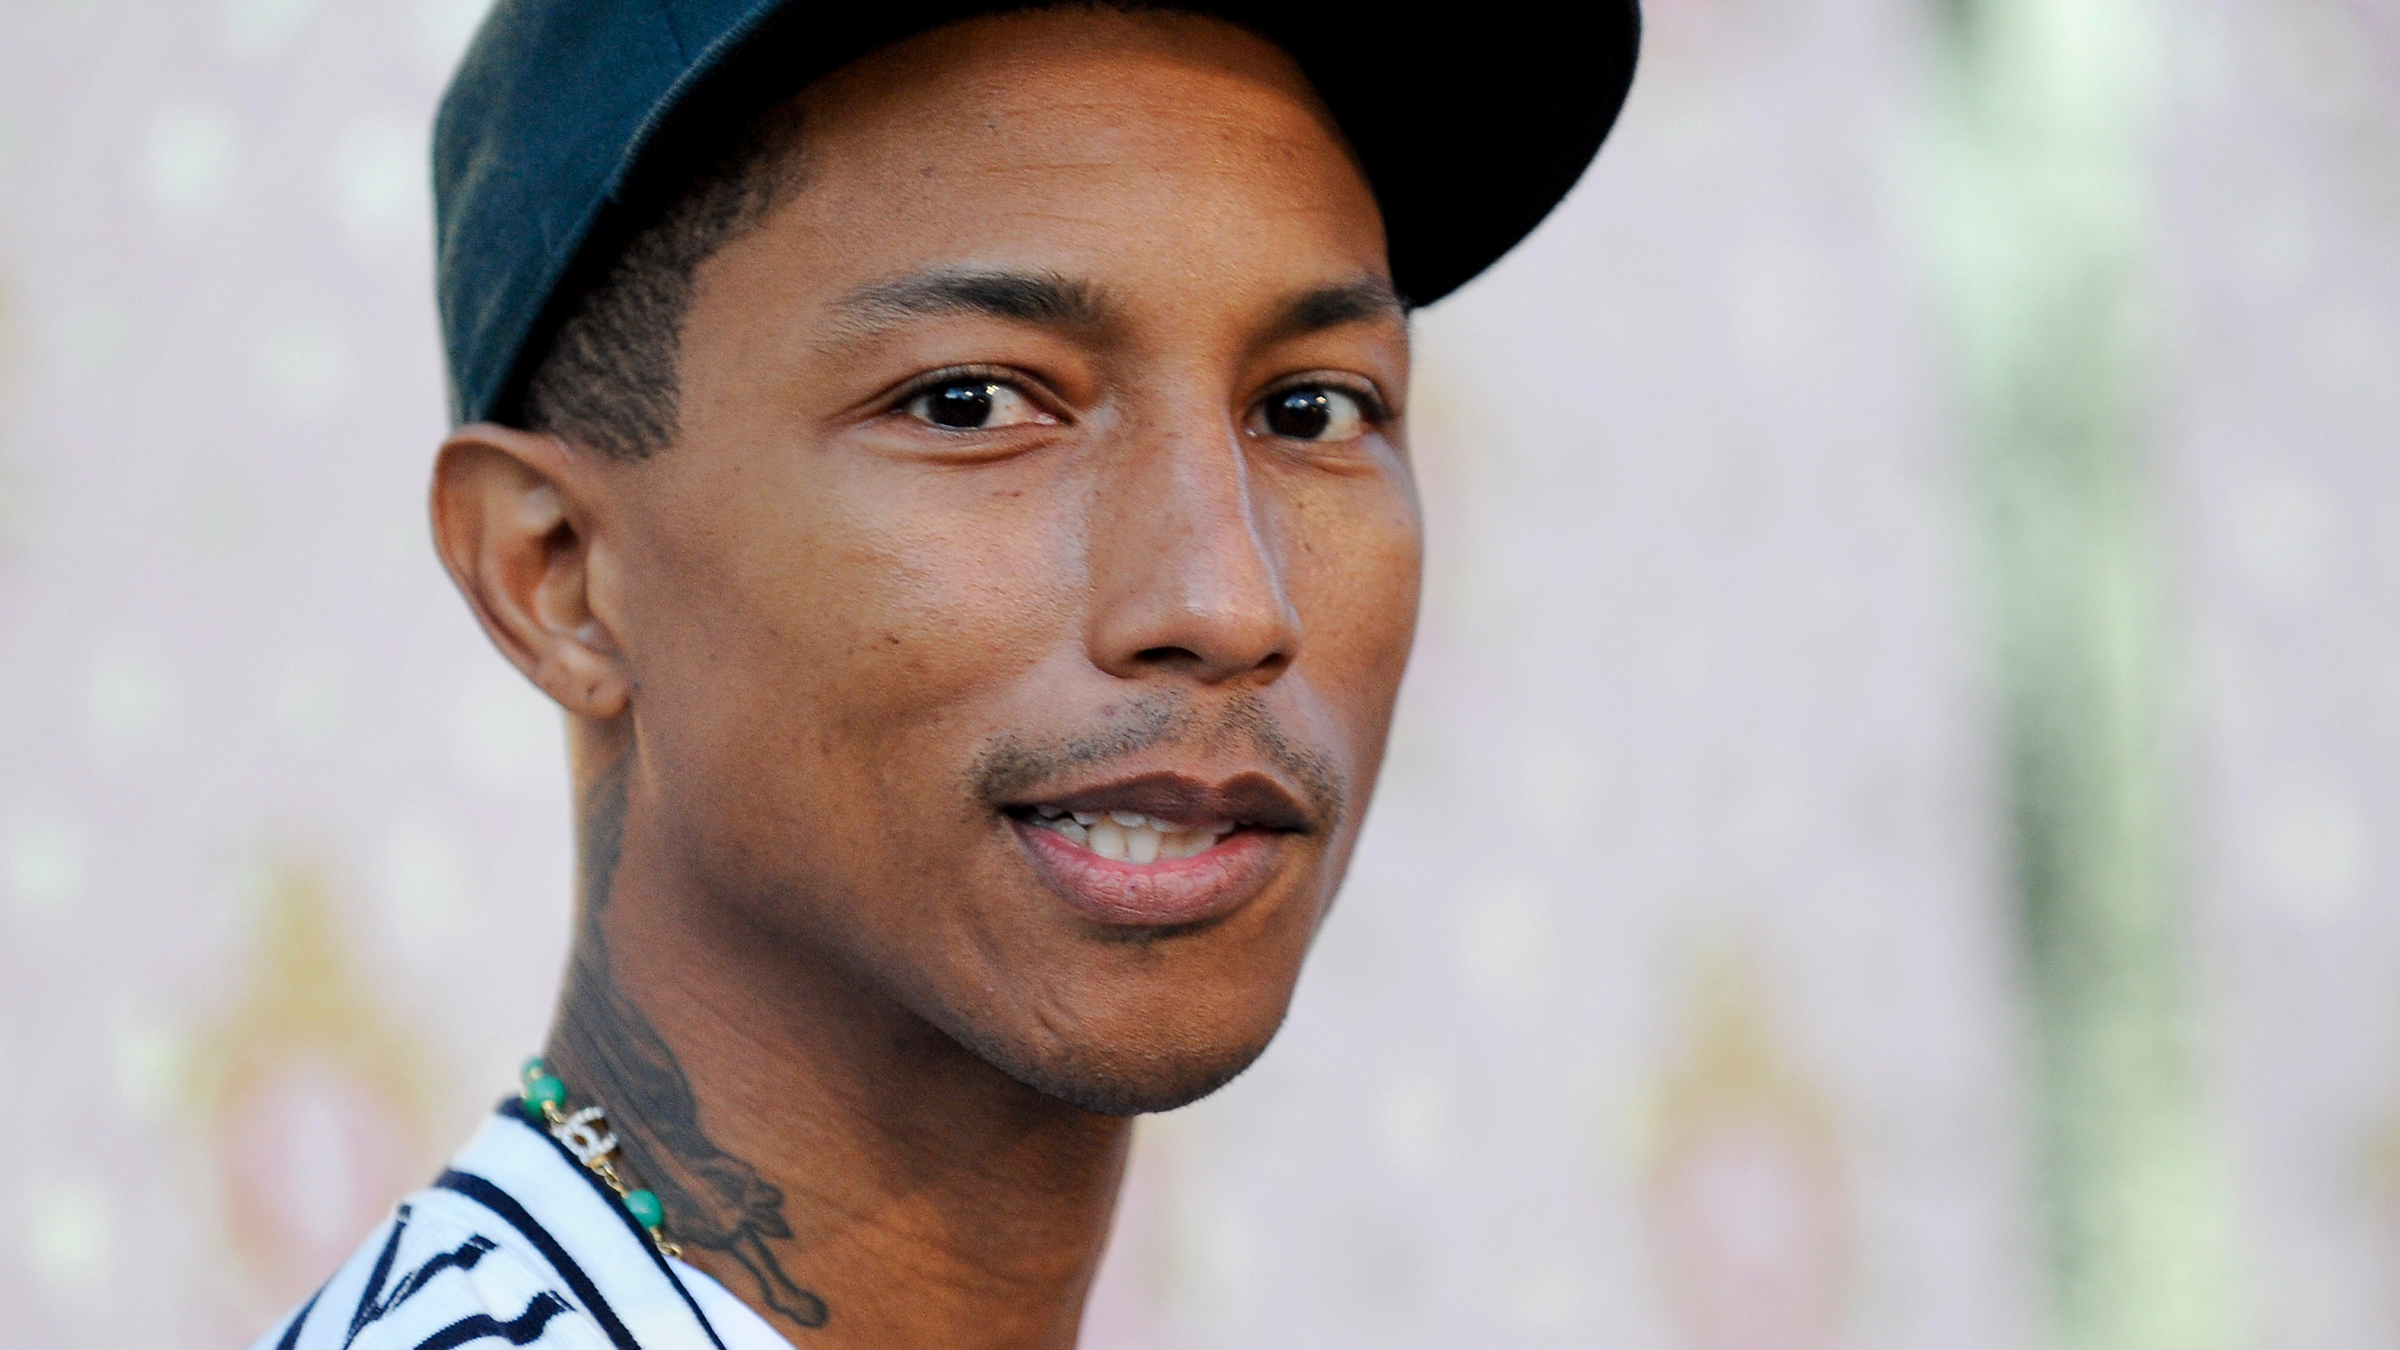 Teaser pharrell williams